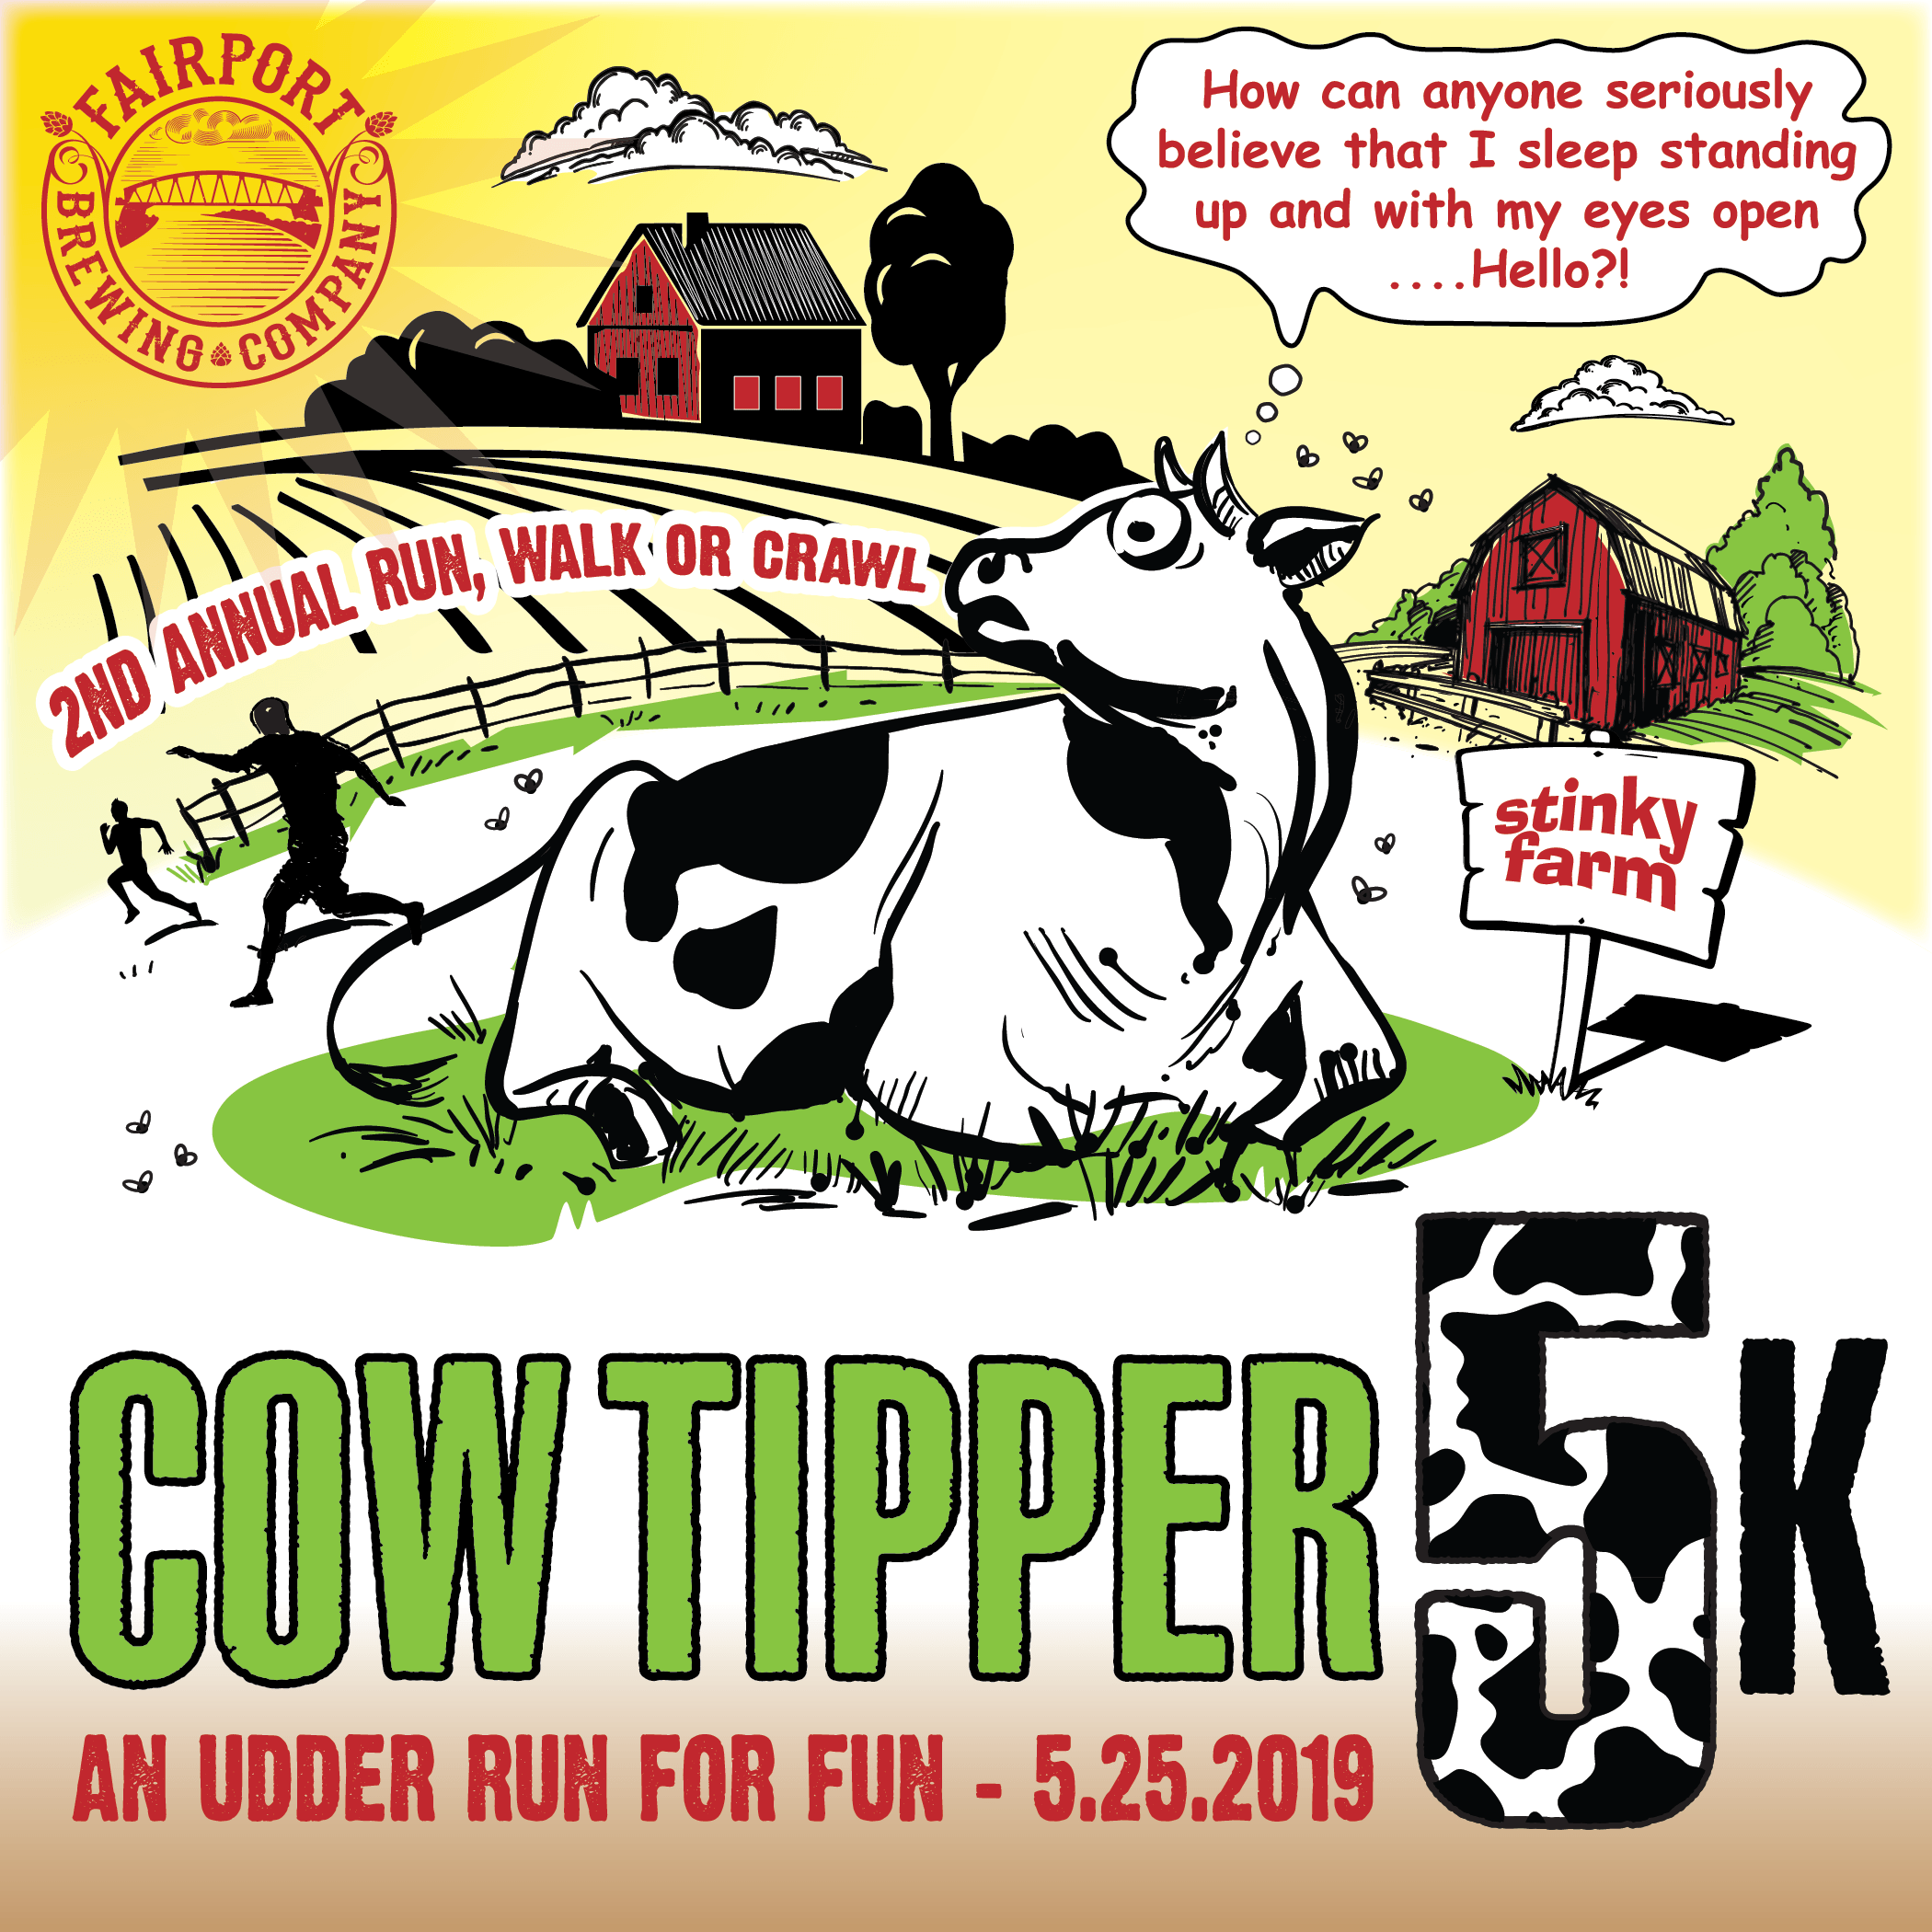 FBC Cowtipper 5k 2019 - Time to Register!